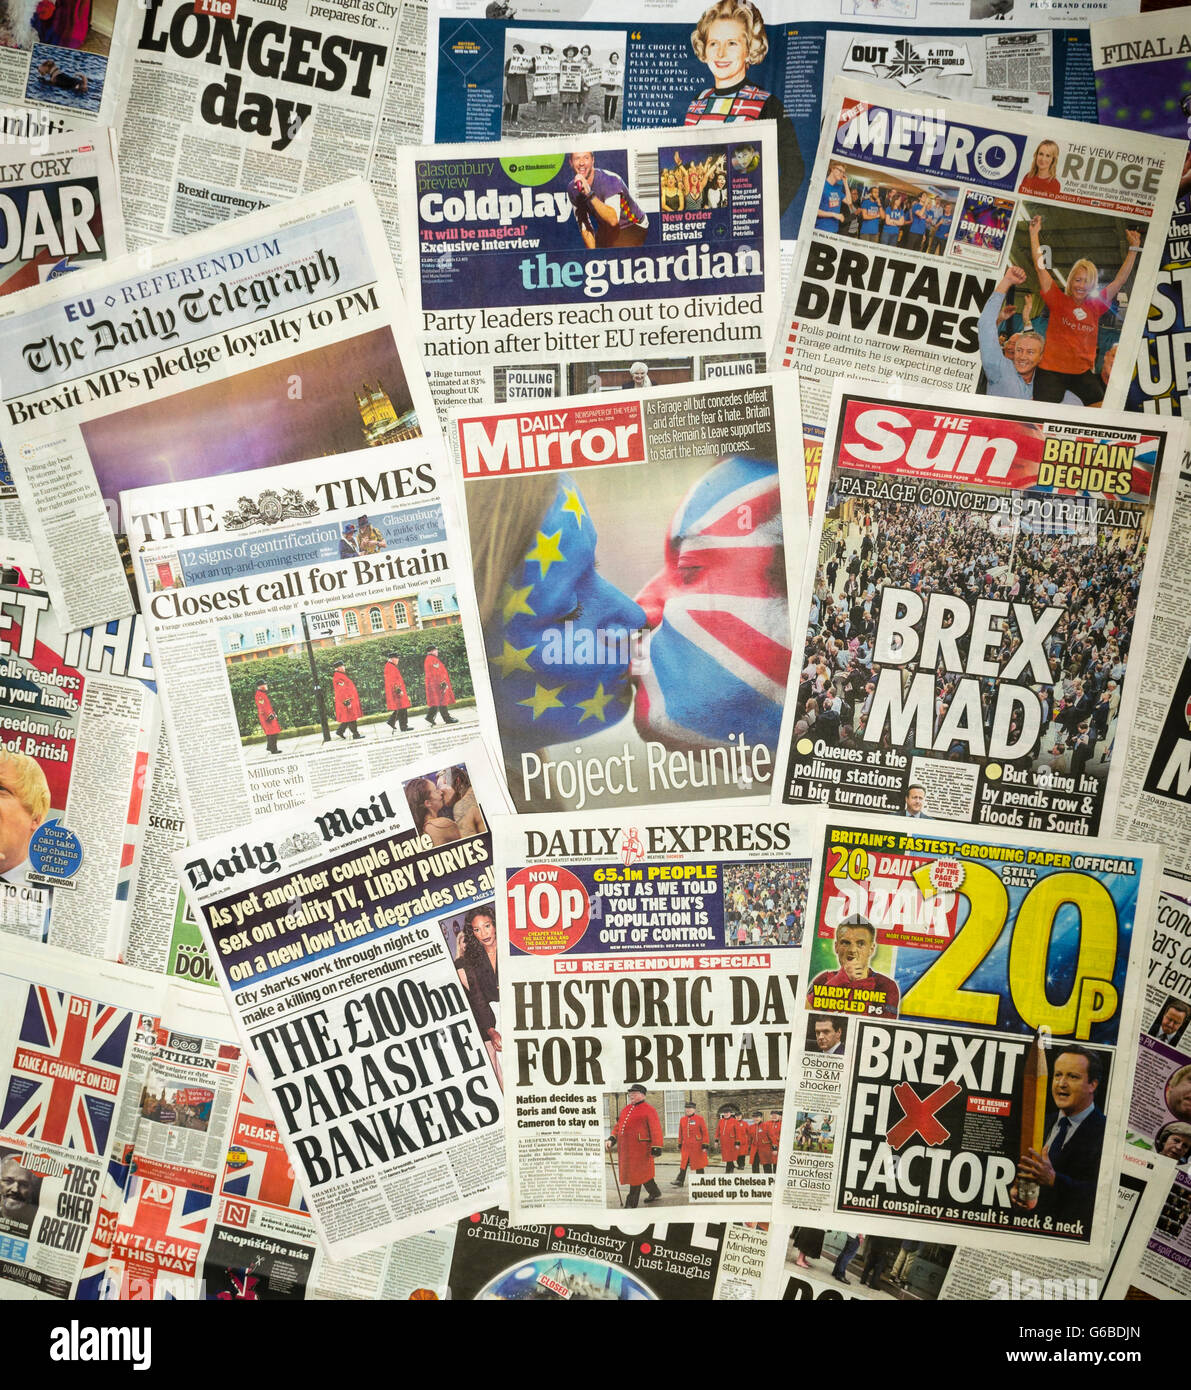 British newspaper front pages reporting on the day after the EU Referendum. - Stock Image